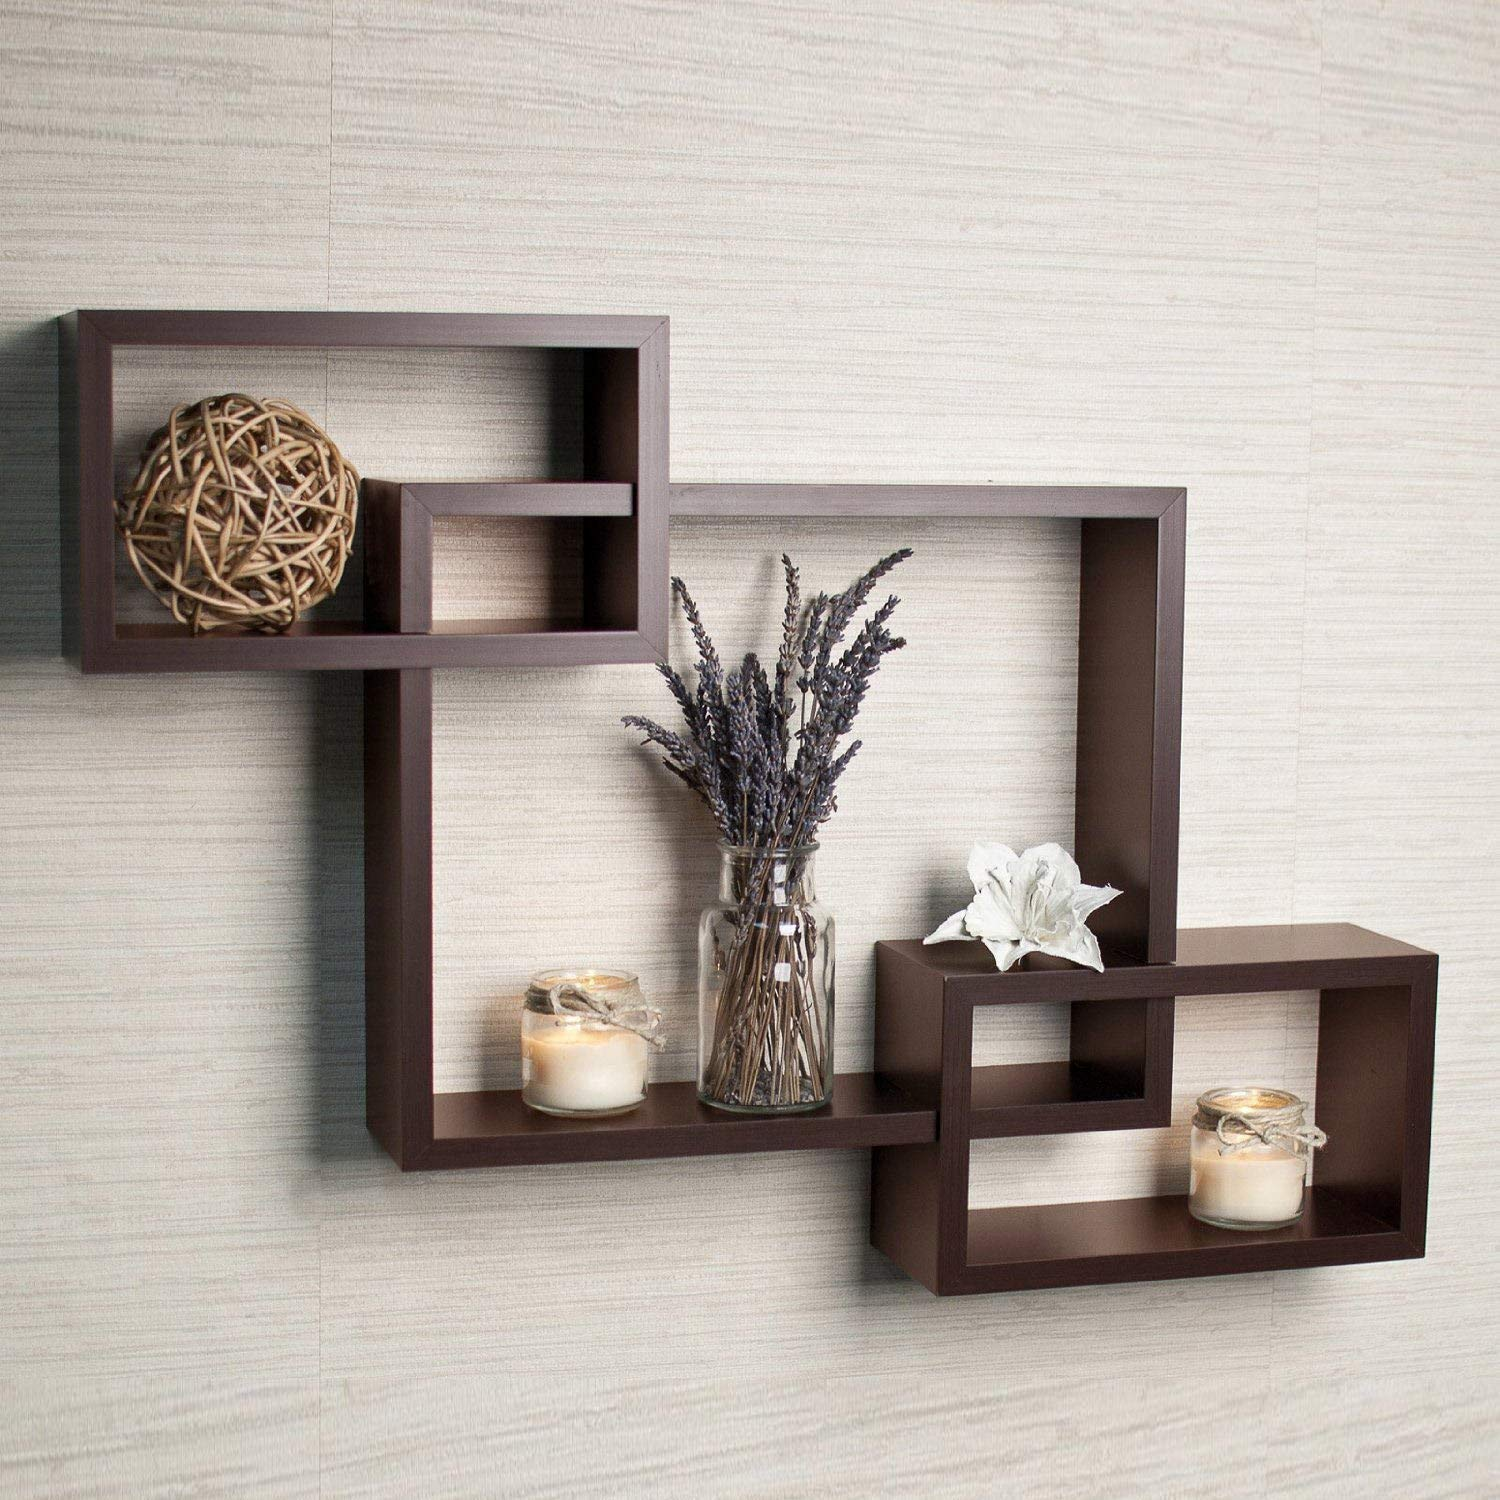 Driftingwood Mdf Intersecting Wall Mounted Shelf For Living Room Home Decor Floating Shelves Set Of 3 Brown Amazon In Home Kitchen